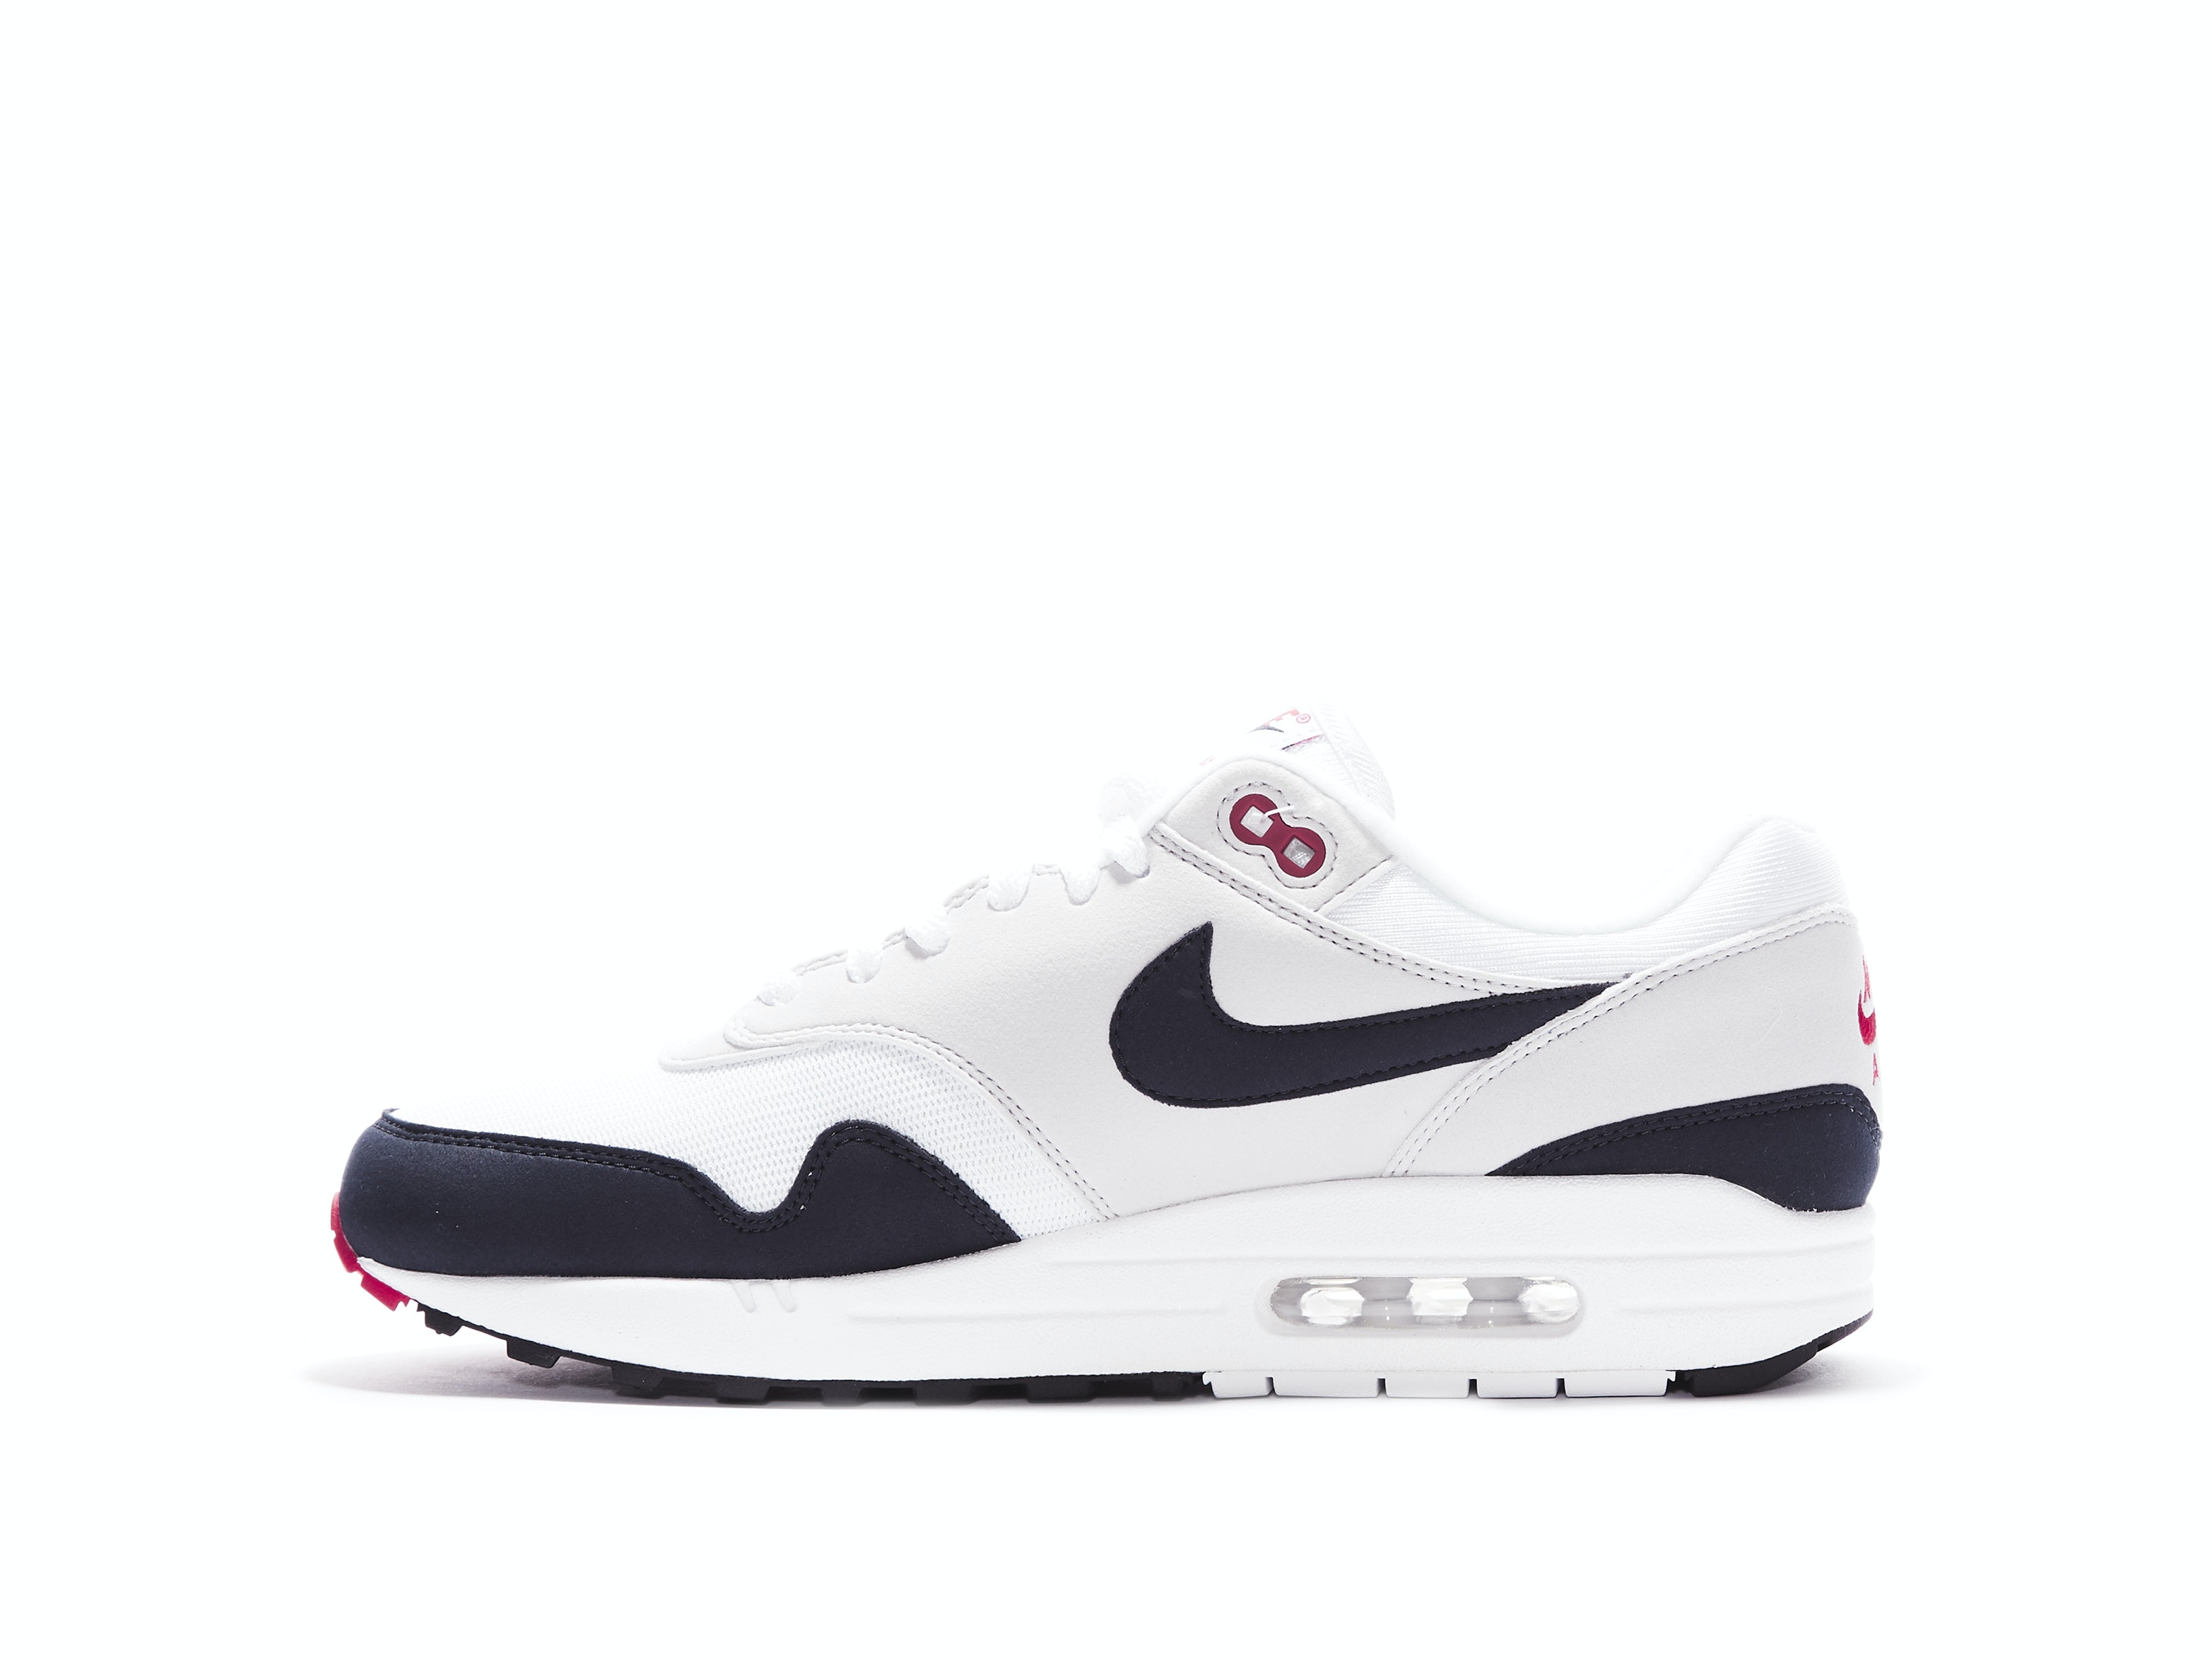 separation shoes 93f63 6ac13 Air Max 1 OG Anniversary Obsidian. 100% AuthenticSold out! Nike   908375-104